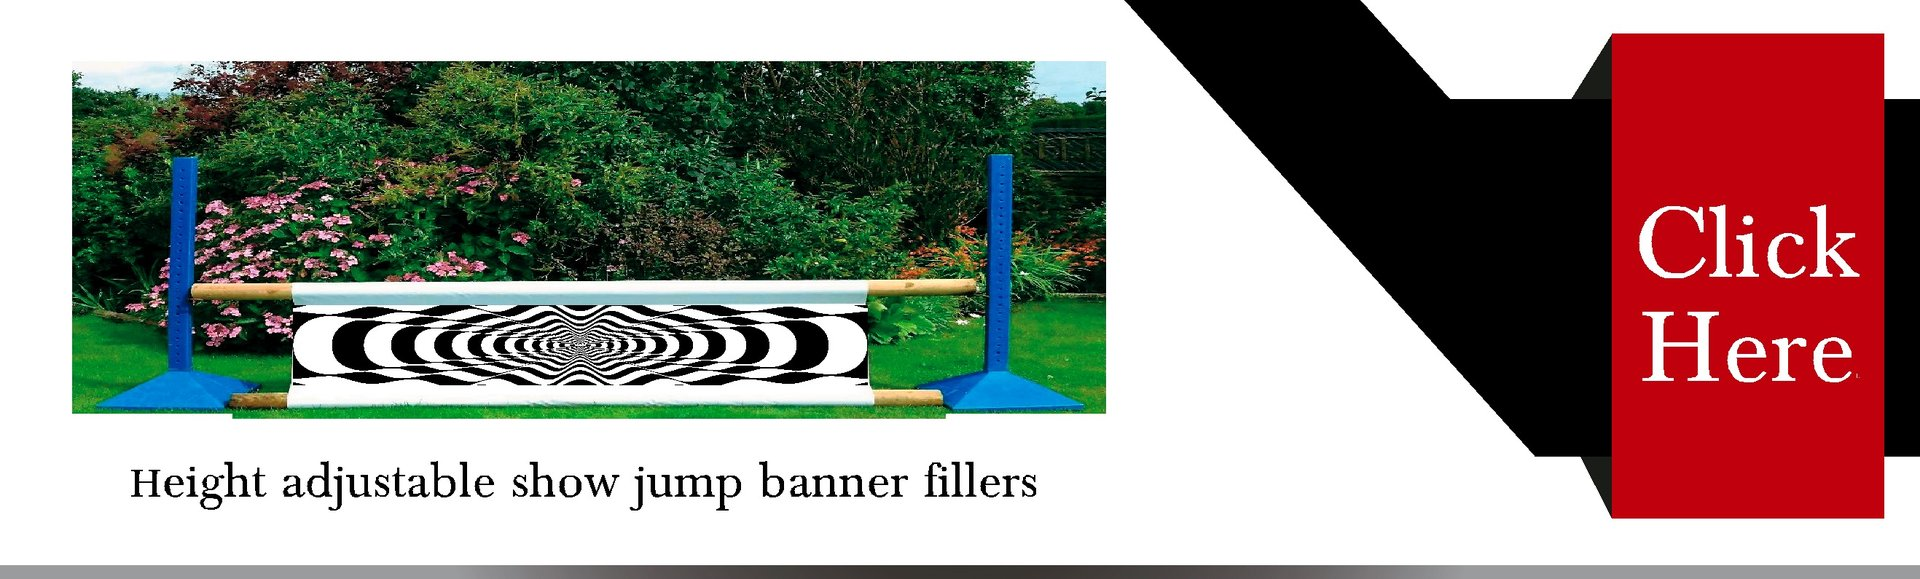 Vinyl Vision Show jump banner fillers for sale